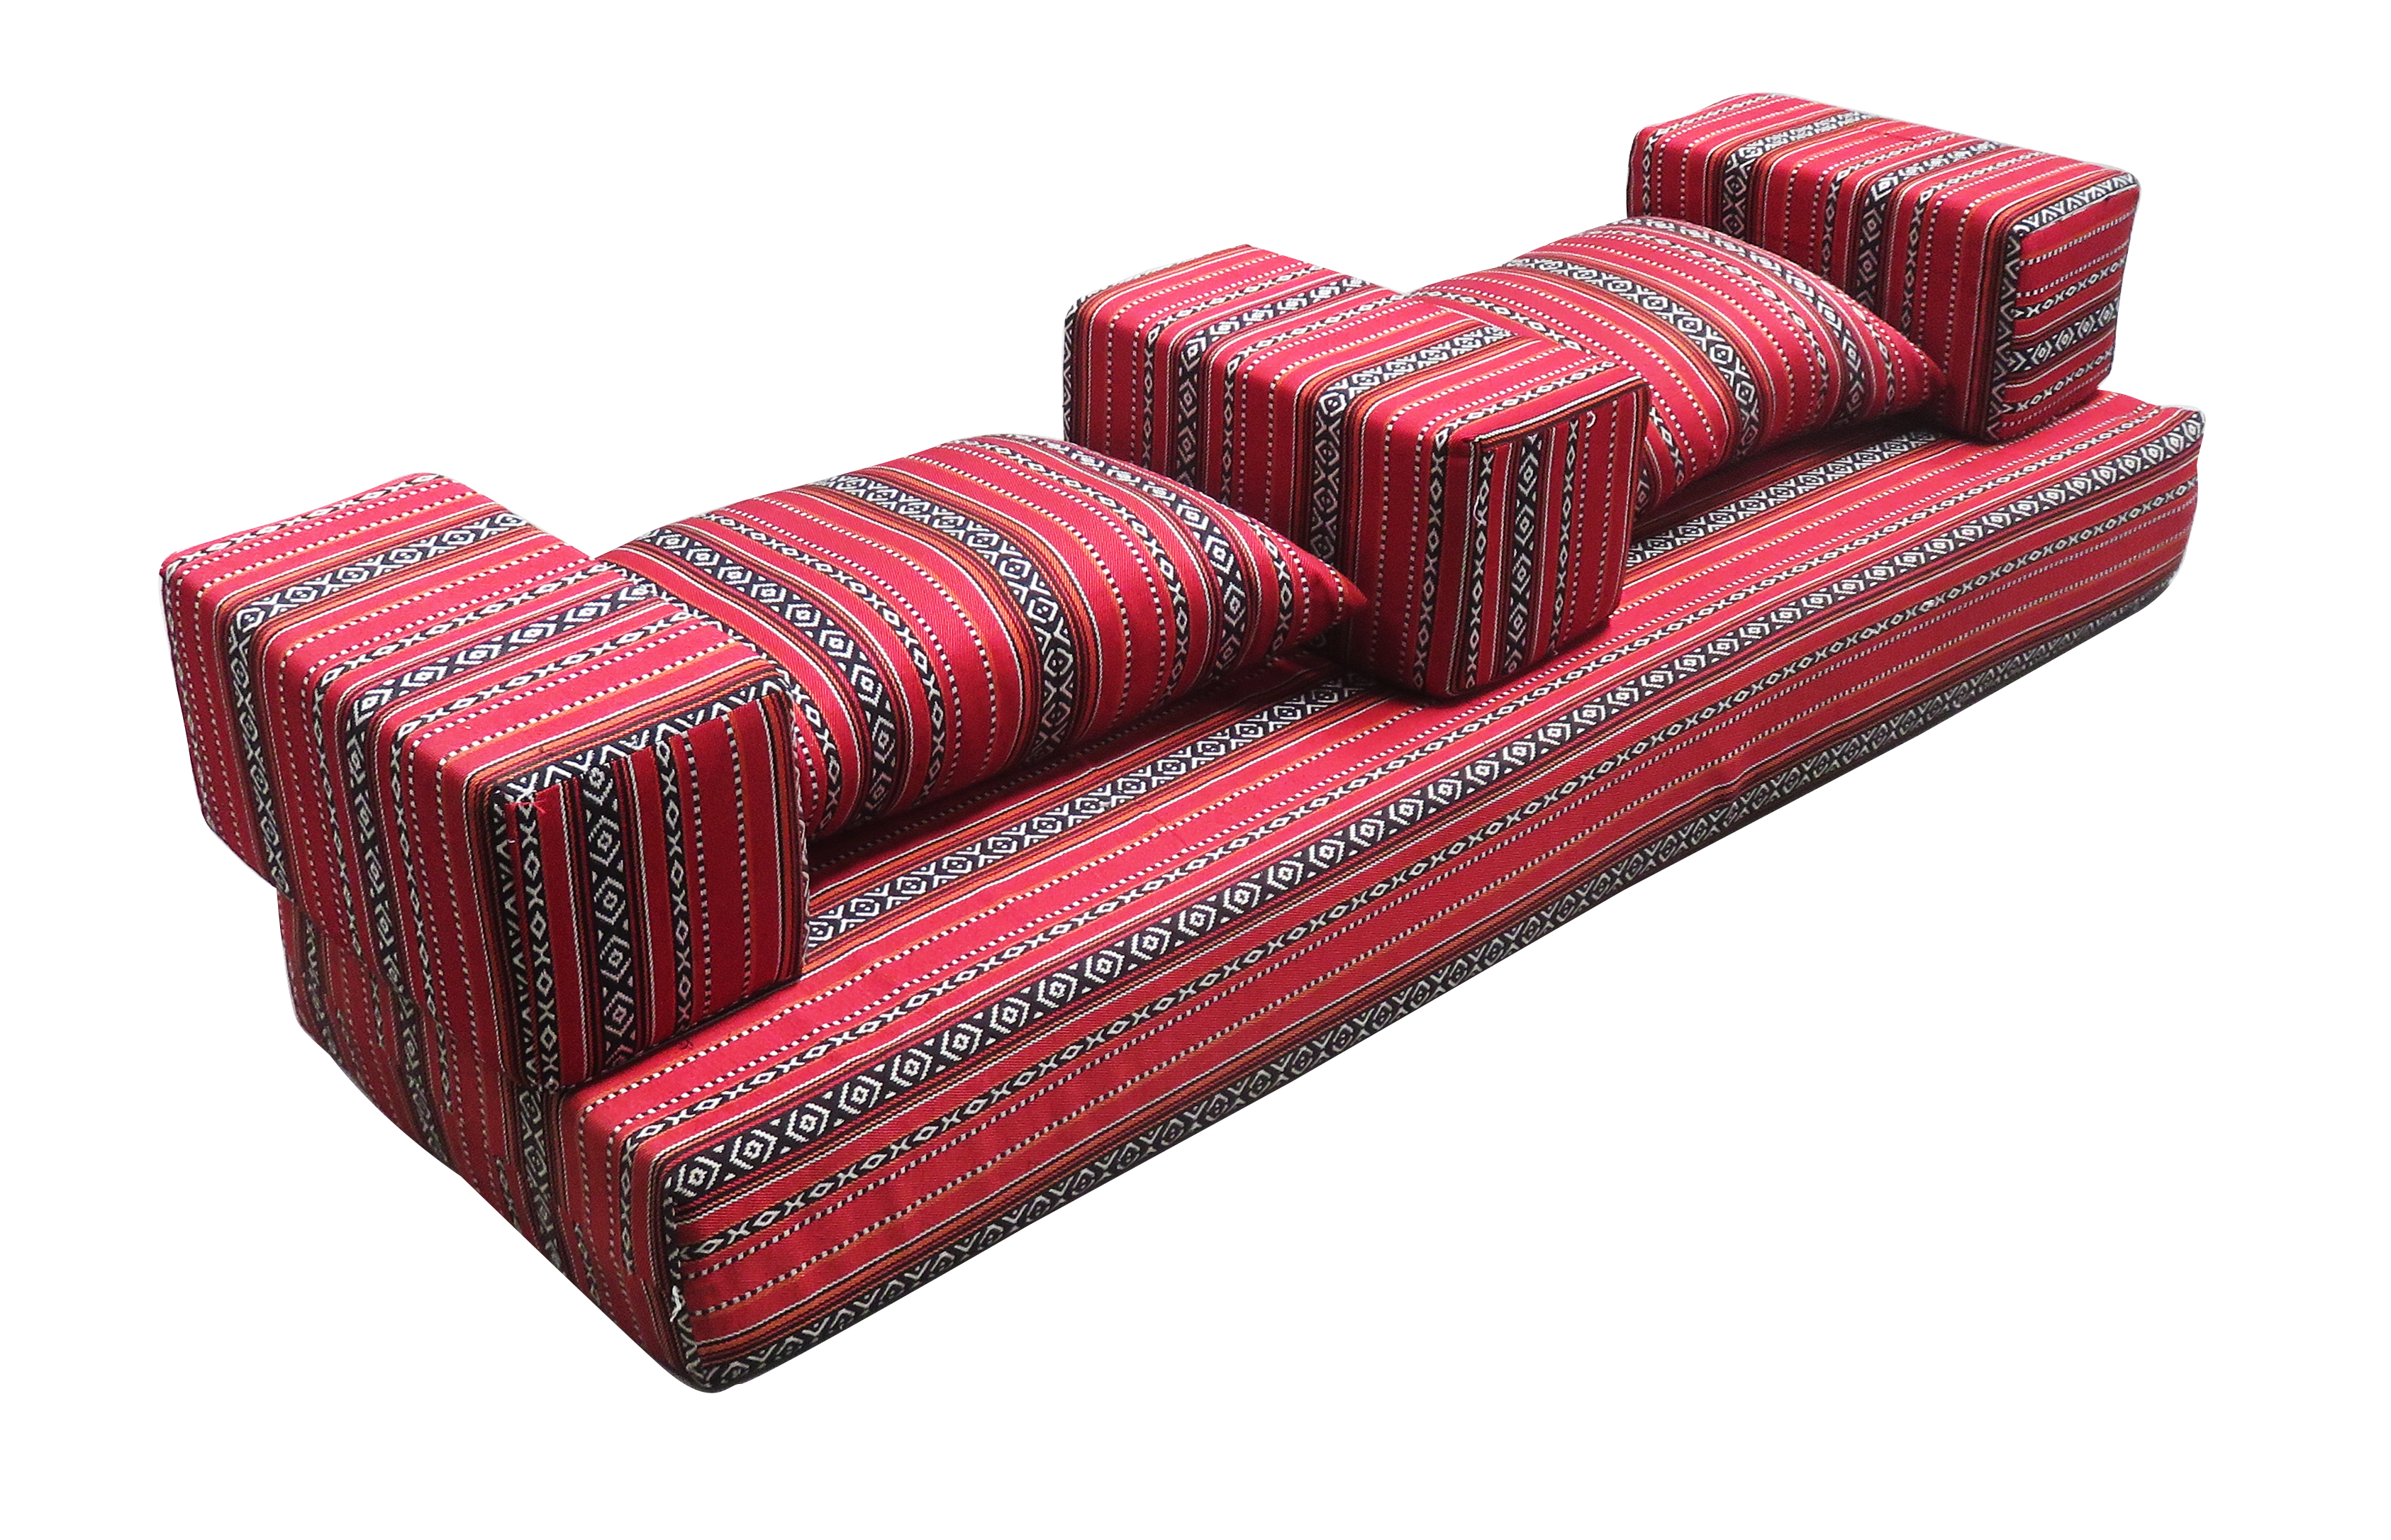 The Arabic Majlis Rectangular Cushion 1 is available for rent or